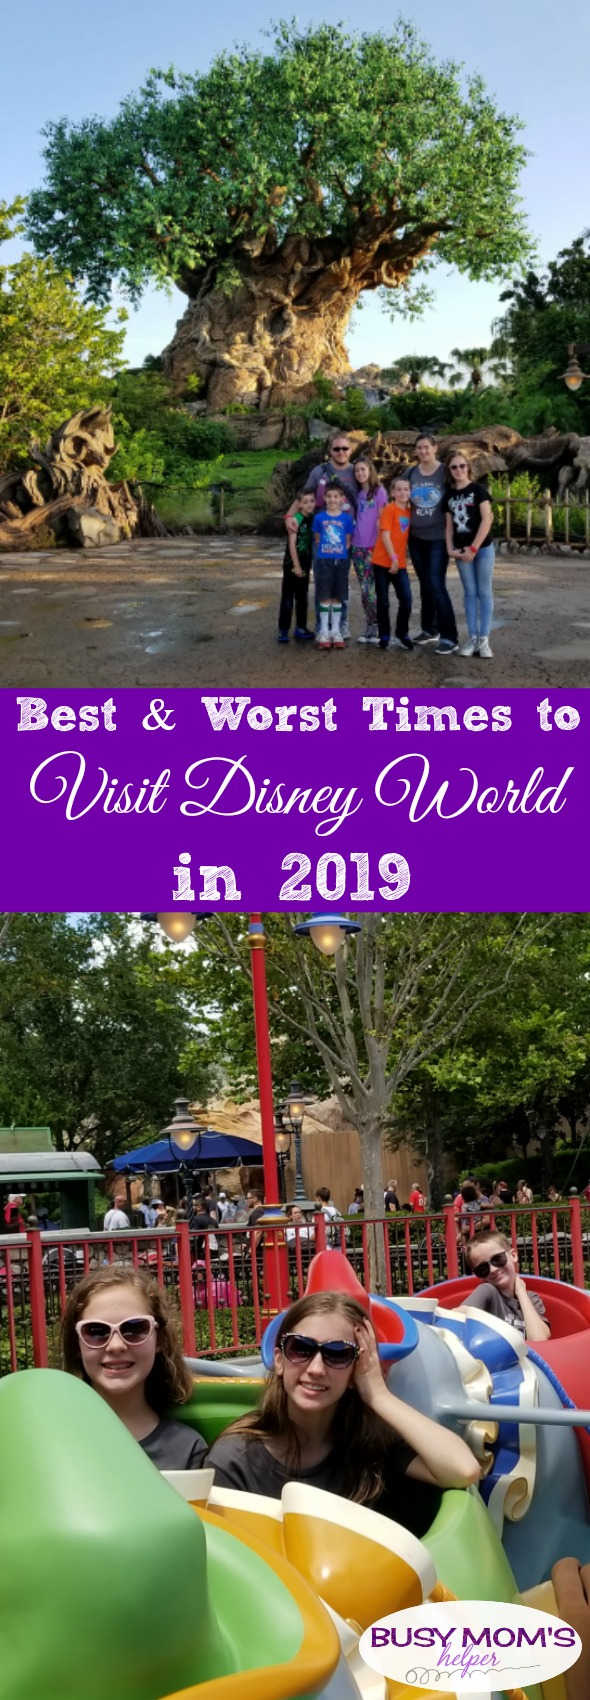 Best & Worst Times to Visit Disney World in 2019 #disneyworld #travel #familytravel #disney #waltdisneyworld #disneyparks